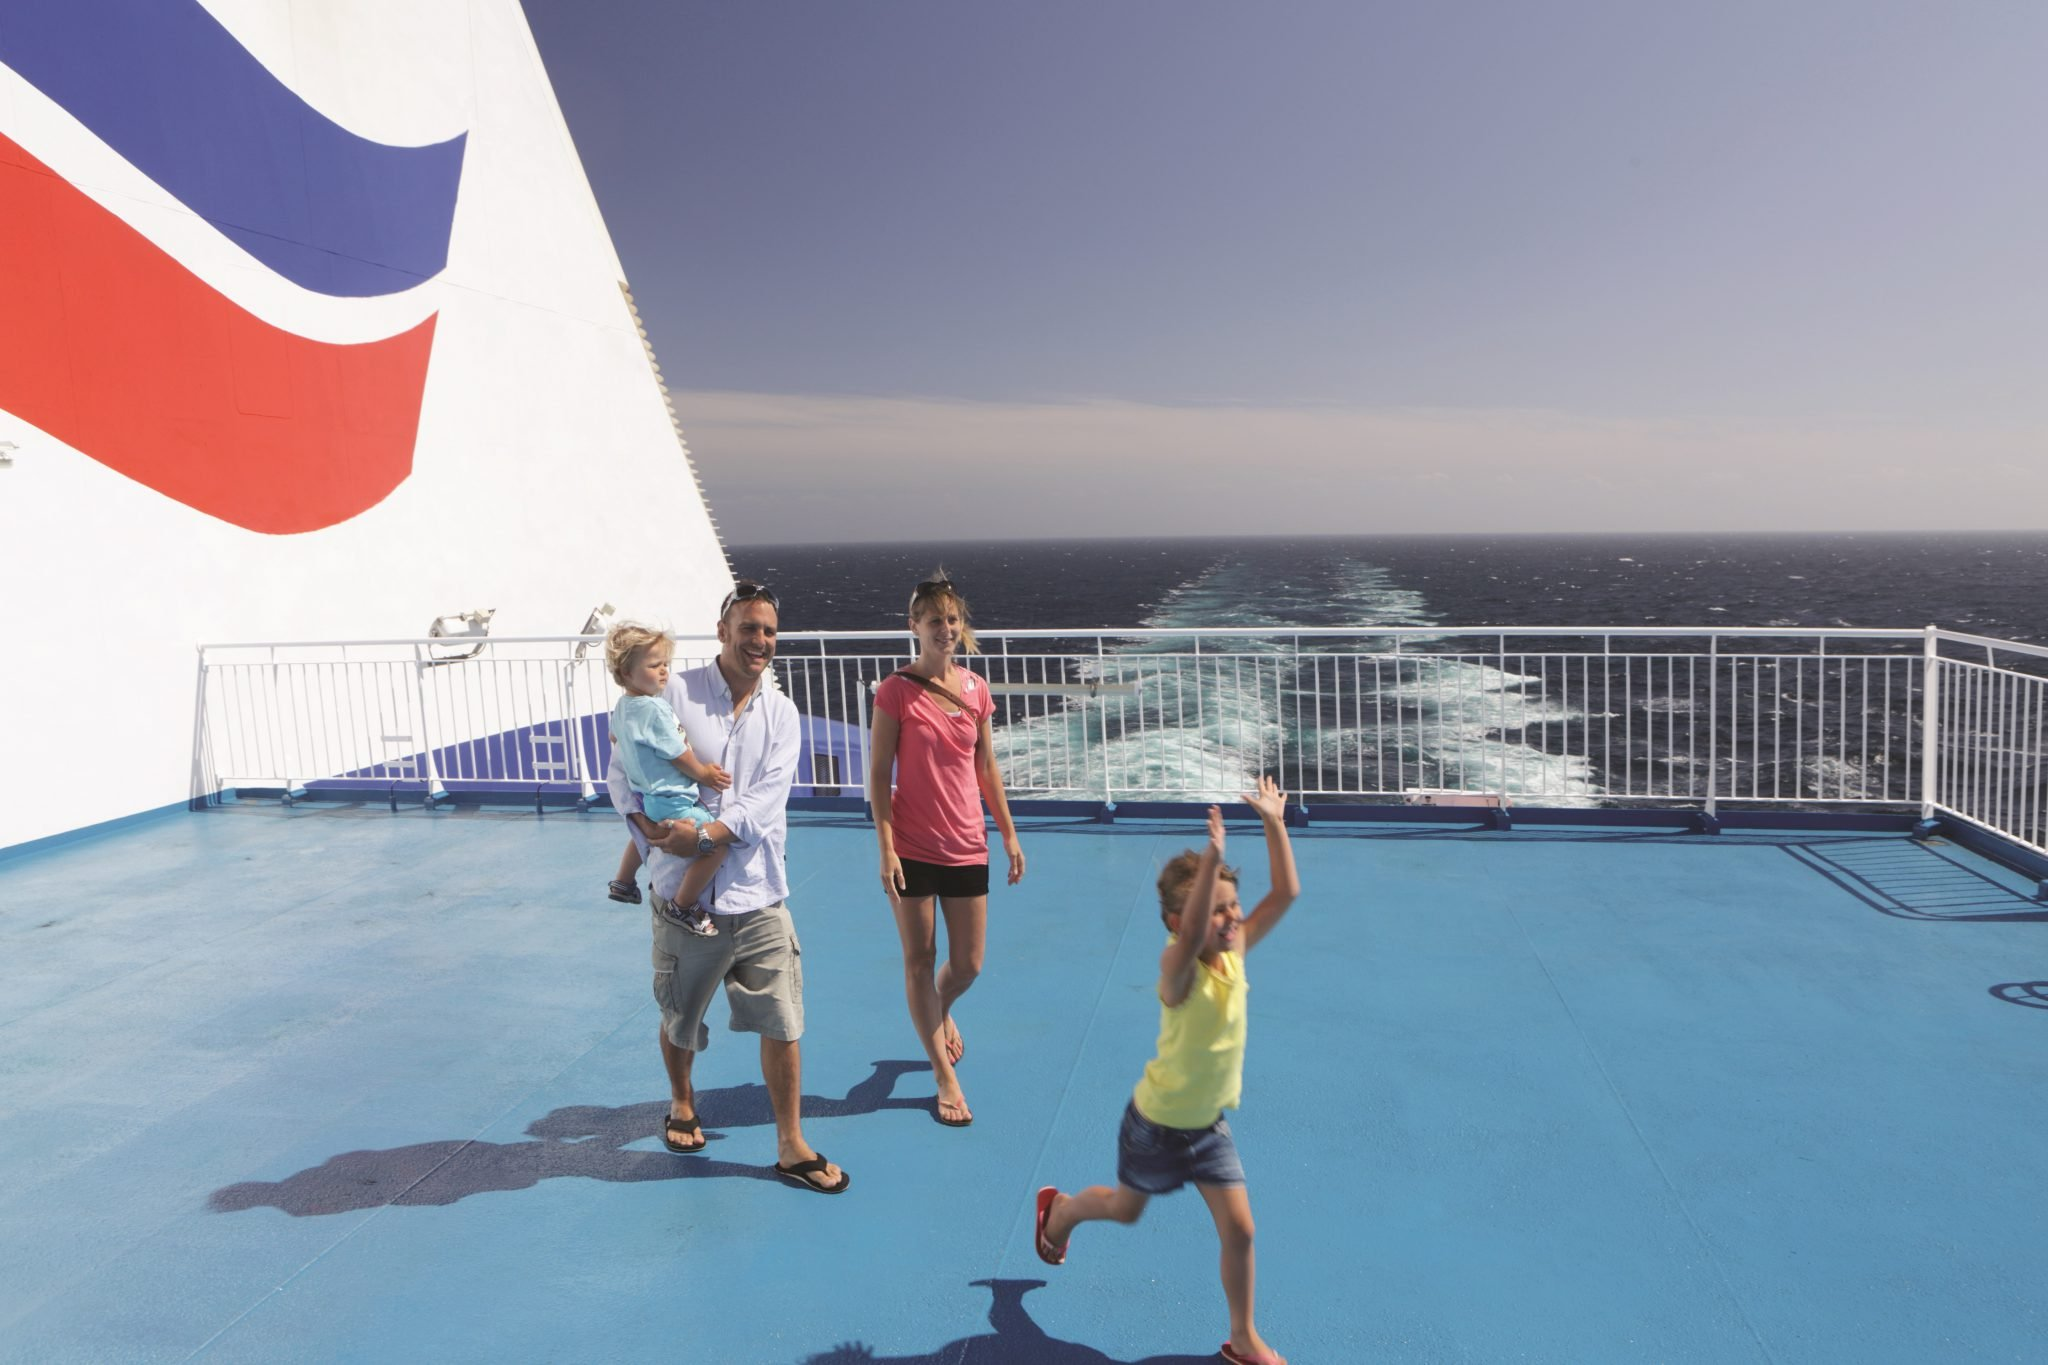 15-02-16 Kids go free with Brittany Ferries